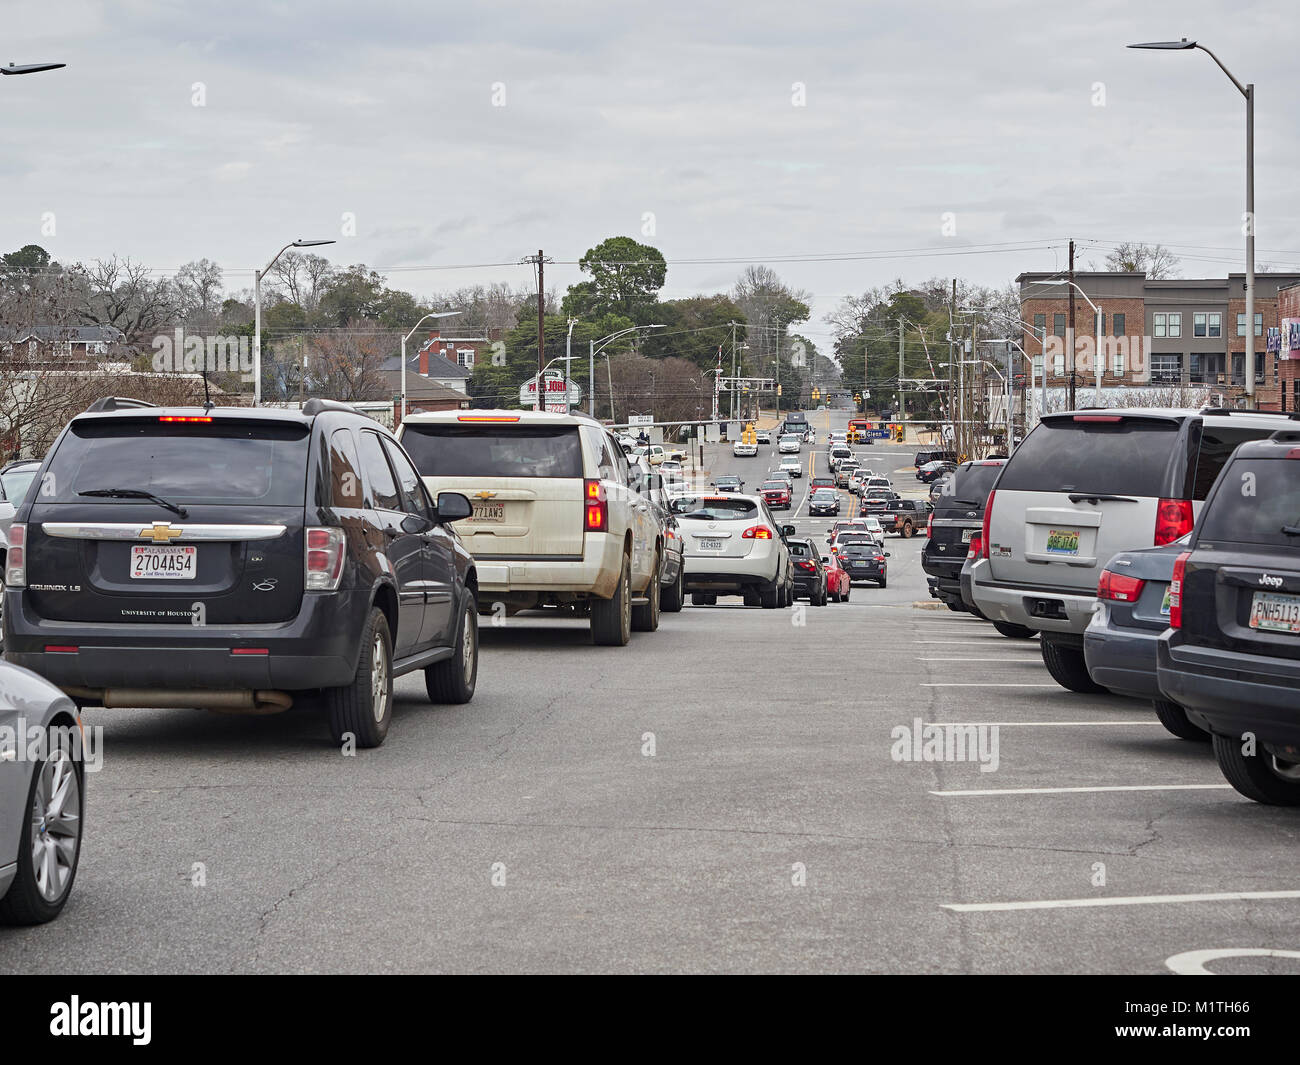 Vehicle traffic on College Street backed up in gridlock in the small town of Auburn Alabama, United States. - Stock Image